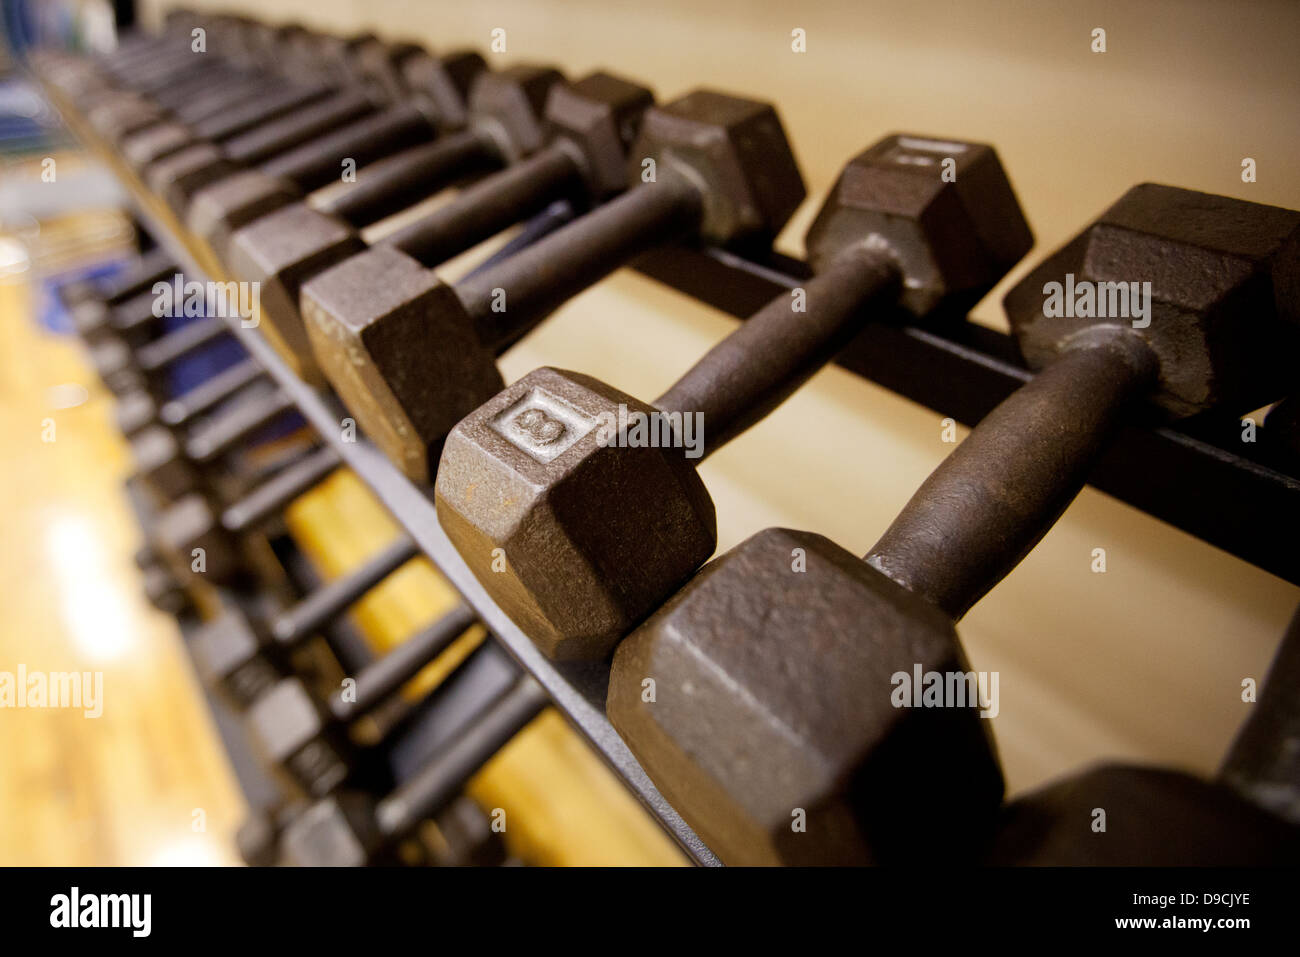 Iron dumbbell weights on a rack at a gym - Stock Image